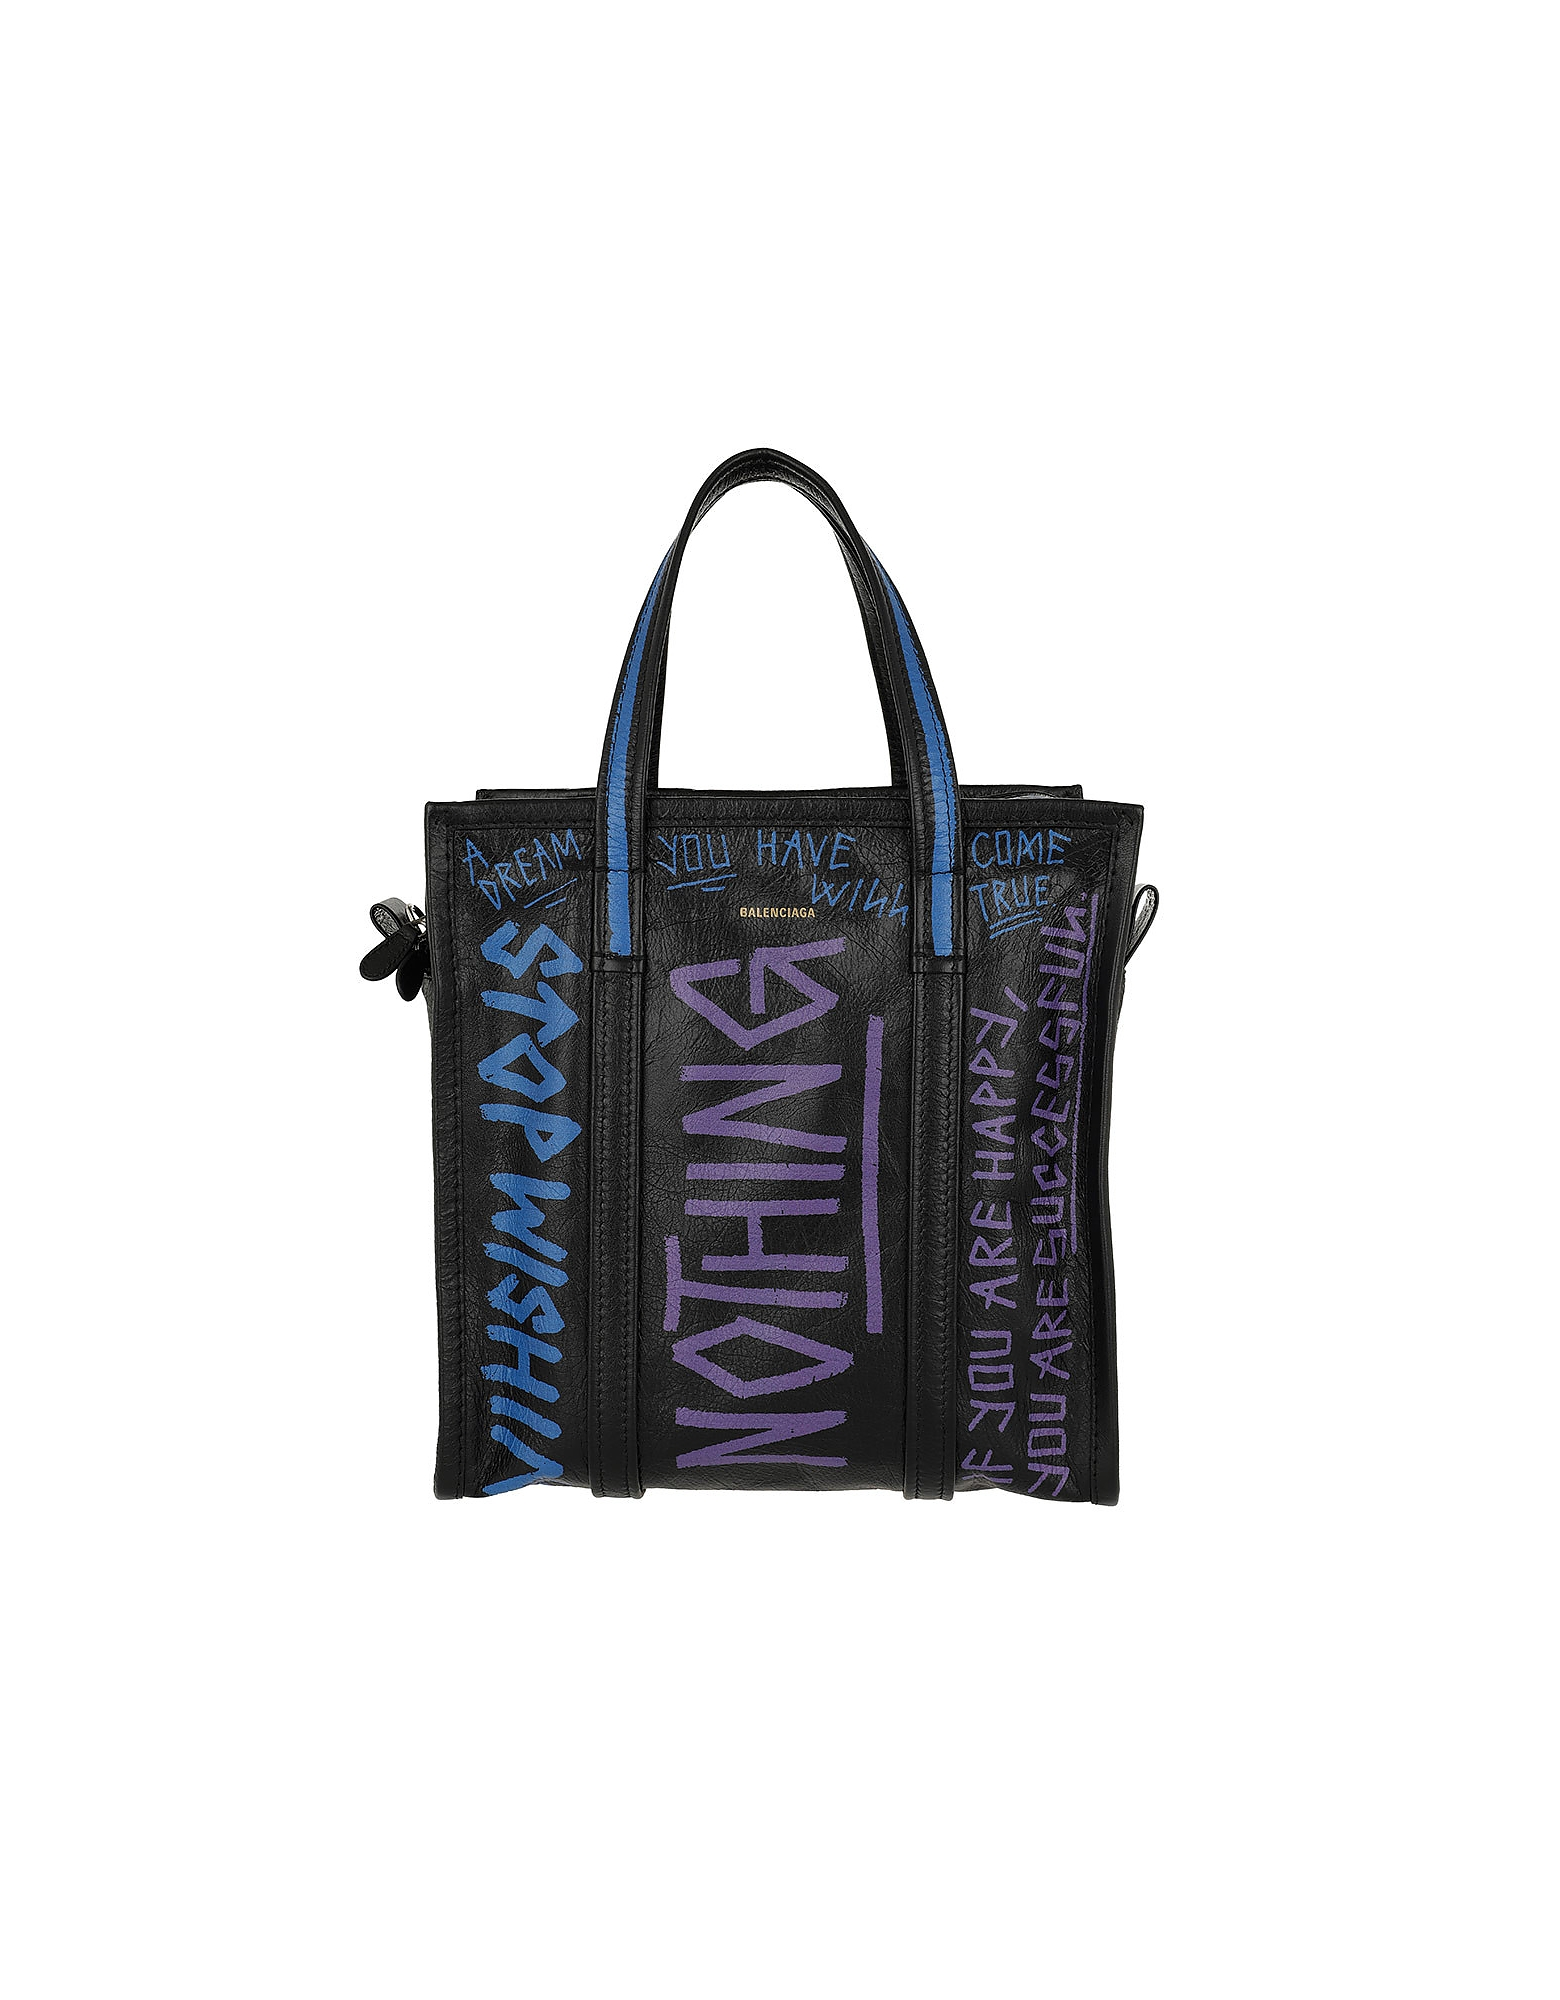 Balenciaga Handbags, Graffiti Bazar Shopper Tote Bag Leather Black/Blue